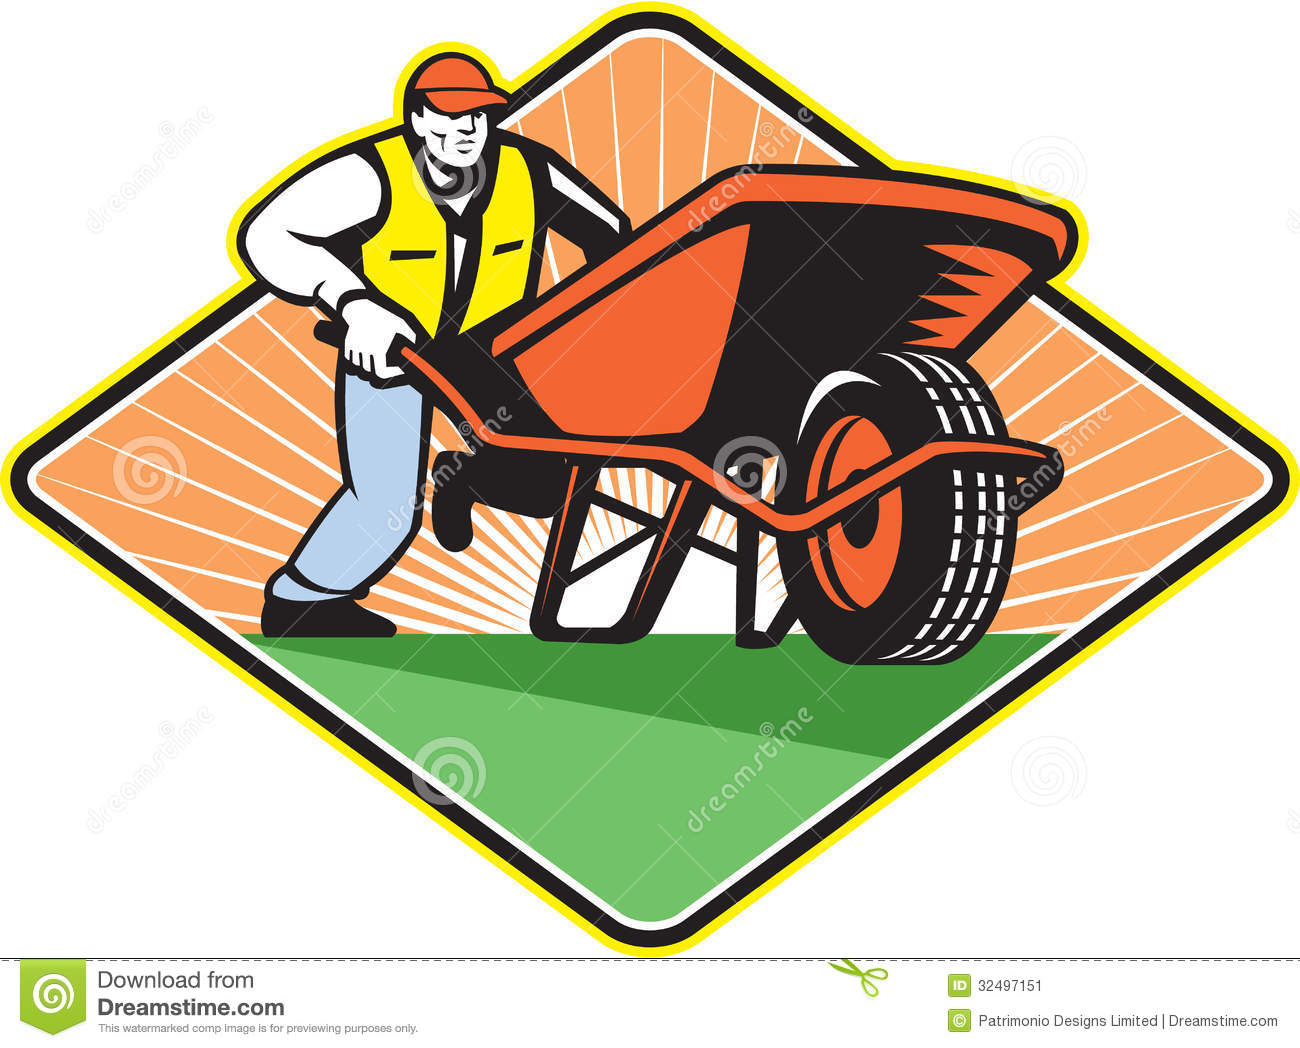 Computer in wheelbarrow clipart. Clipartfest gardener pushing